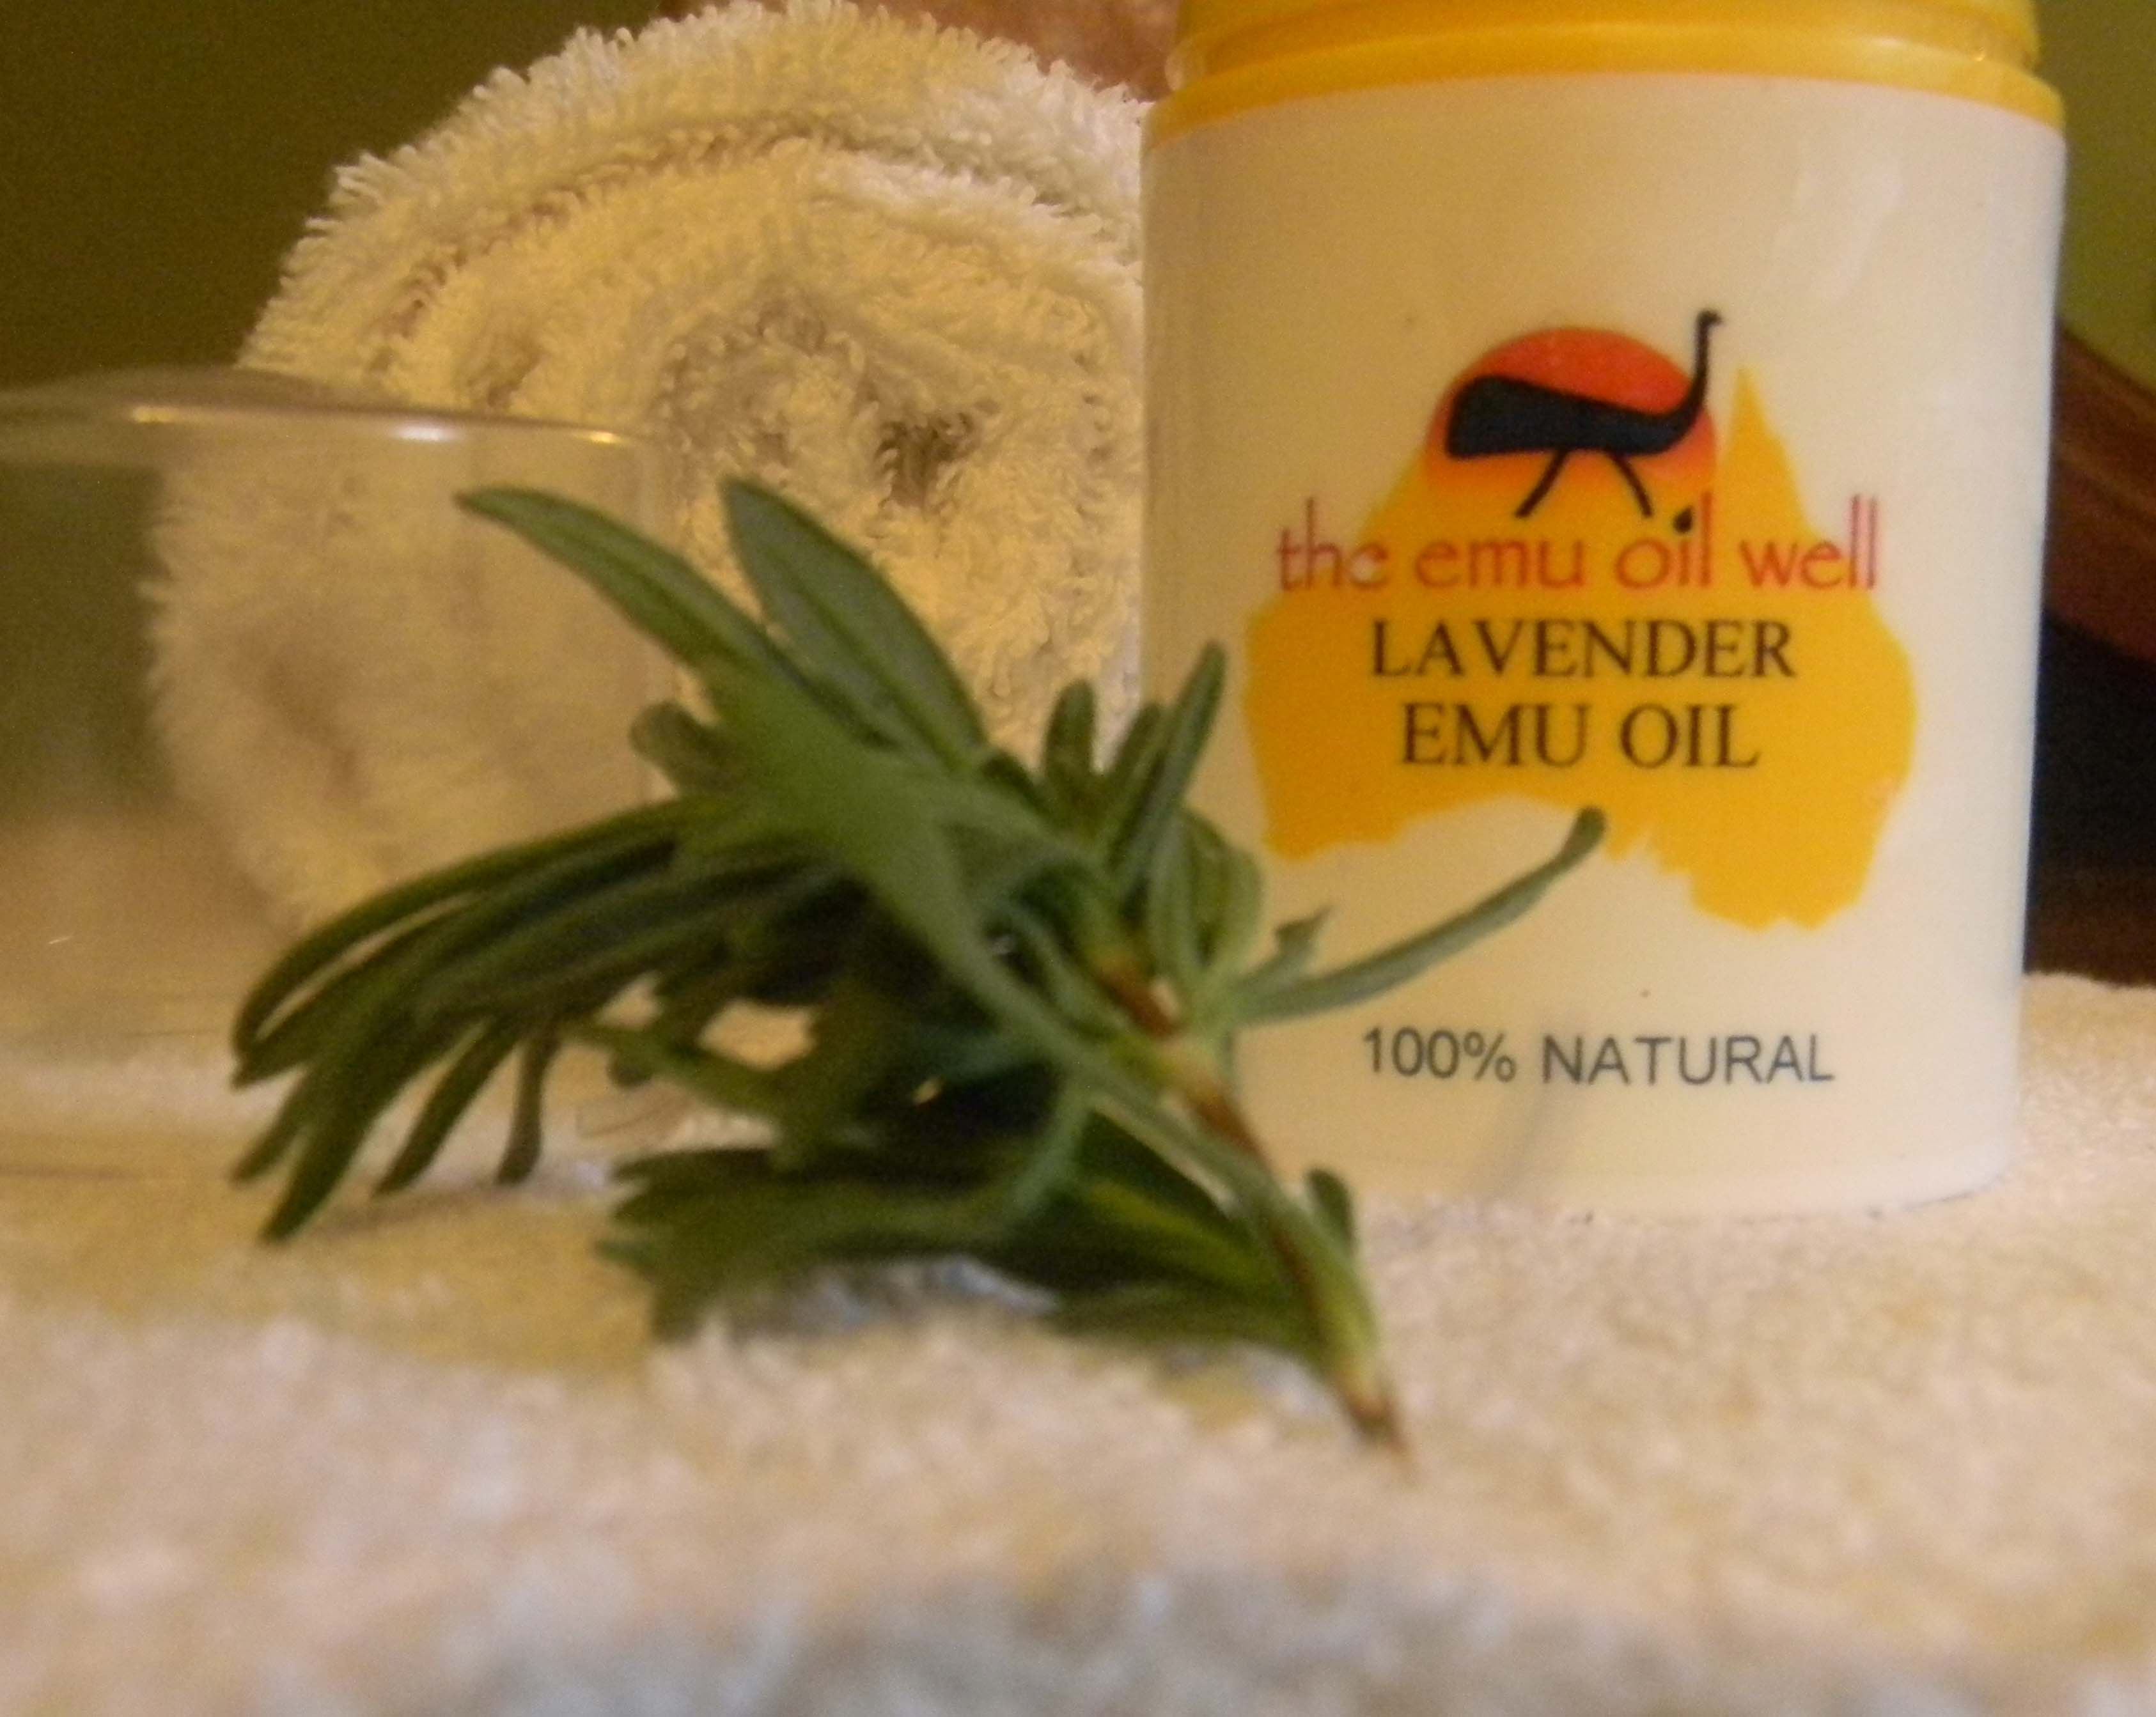 Benefits of Emu Oil for your skin!